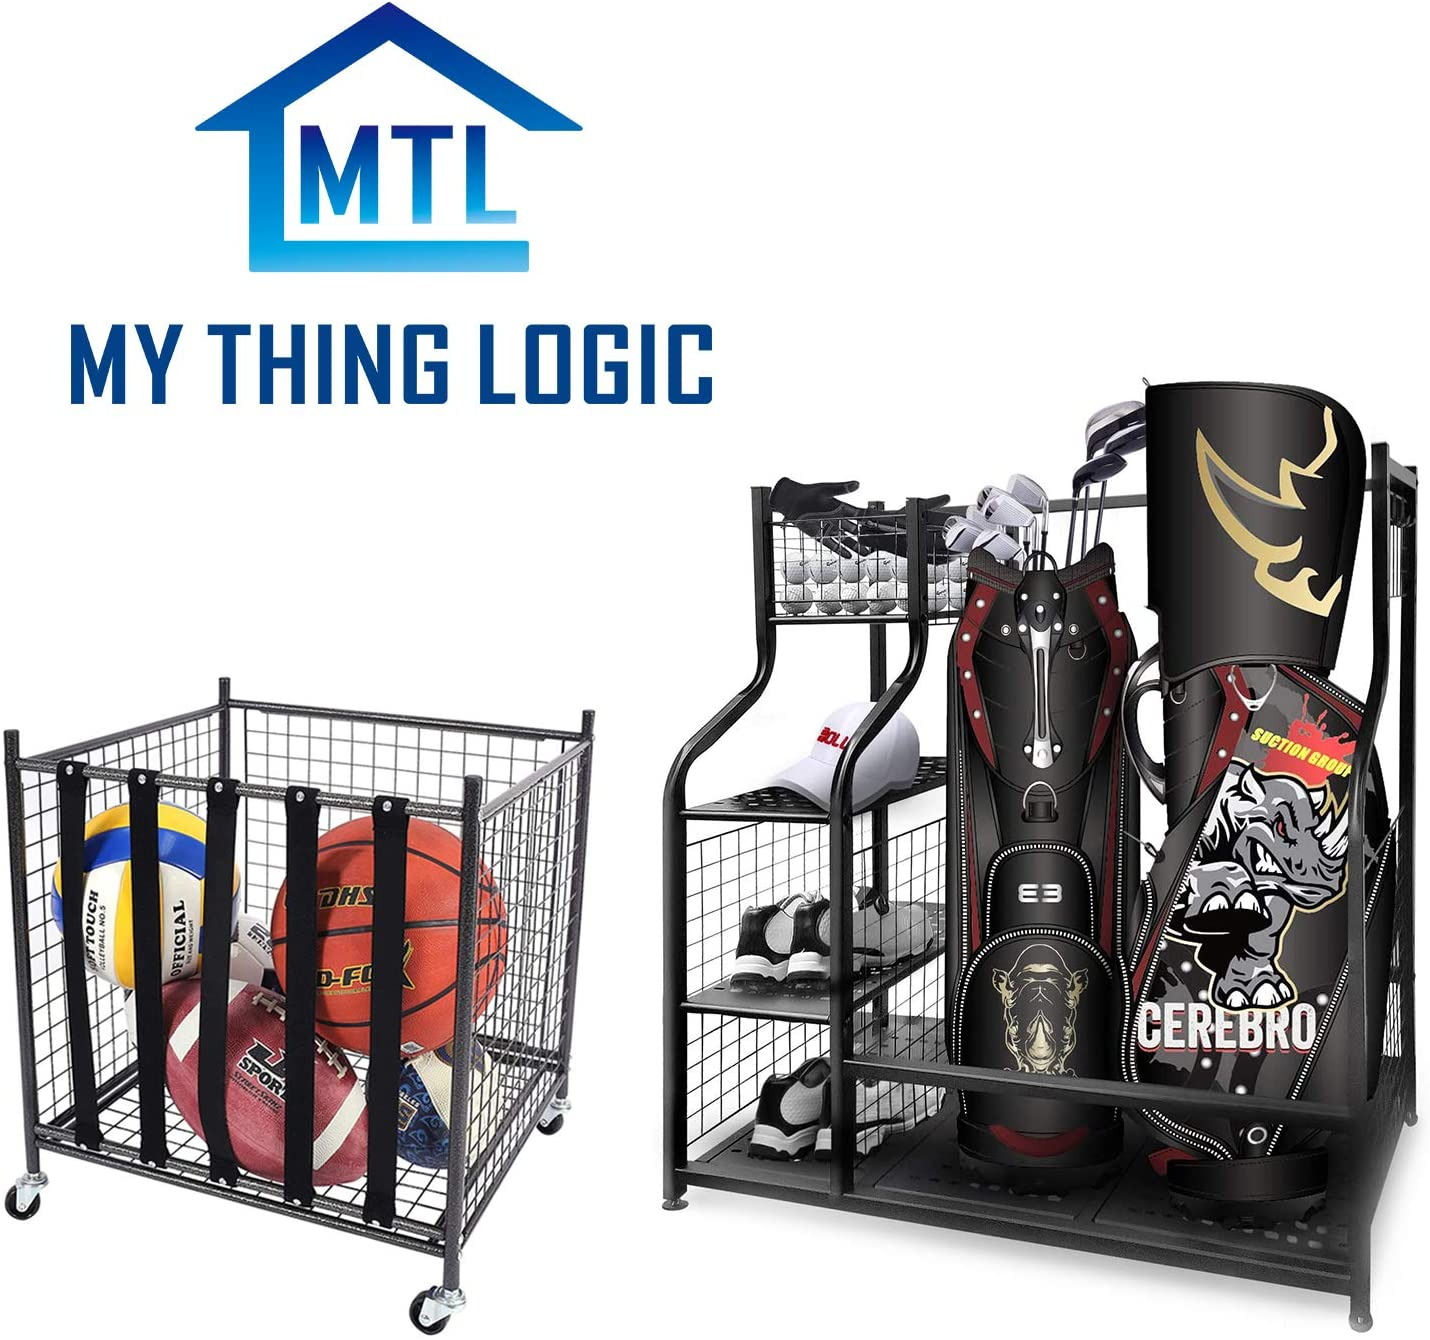 Mythinglogic Stackable Ball Cage for Garage Storage Garage Organizer/Golf Storage Garage Organizer,Extra Large Design for Golf Clubs Accessories